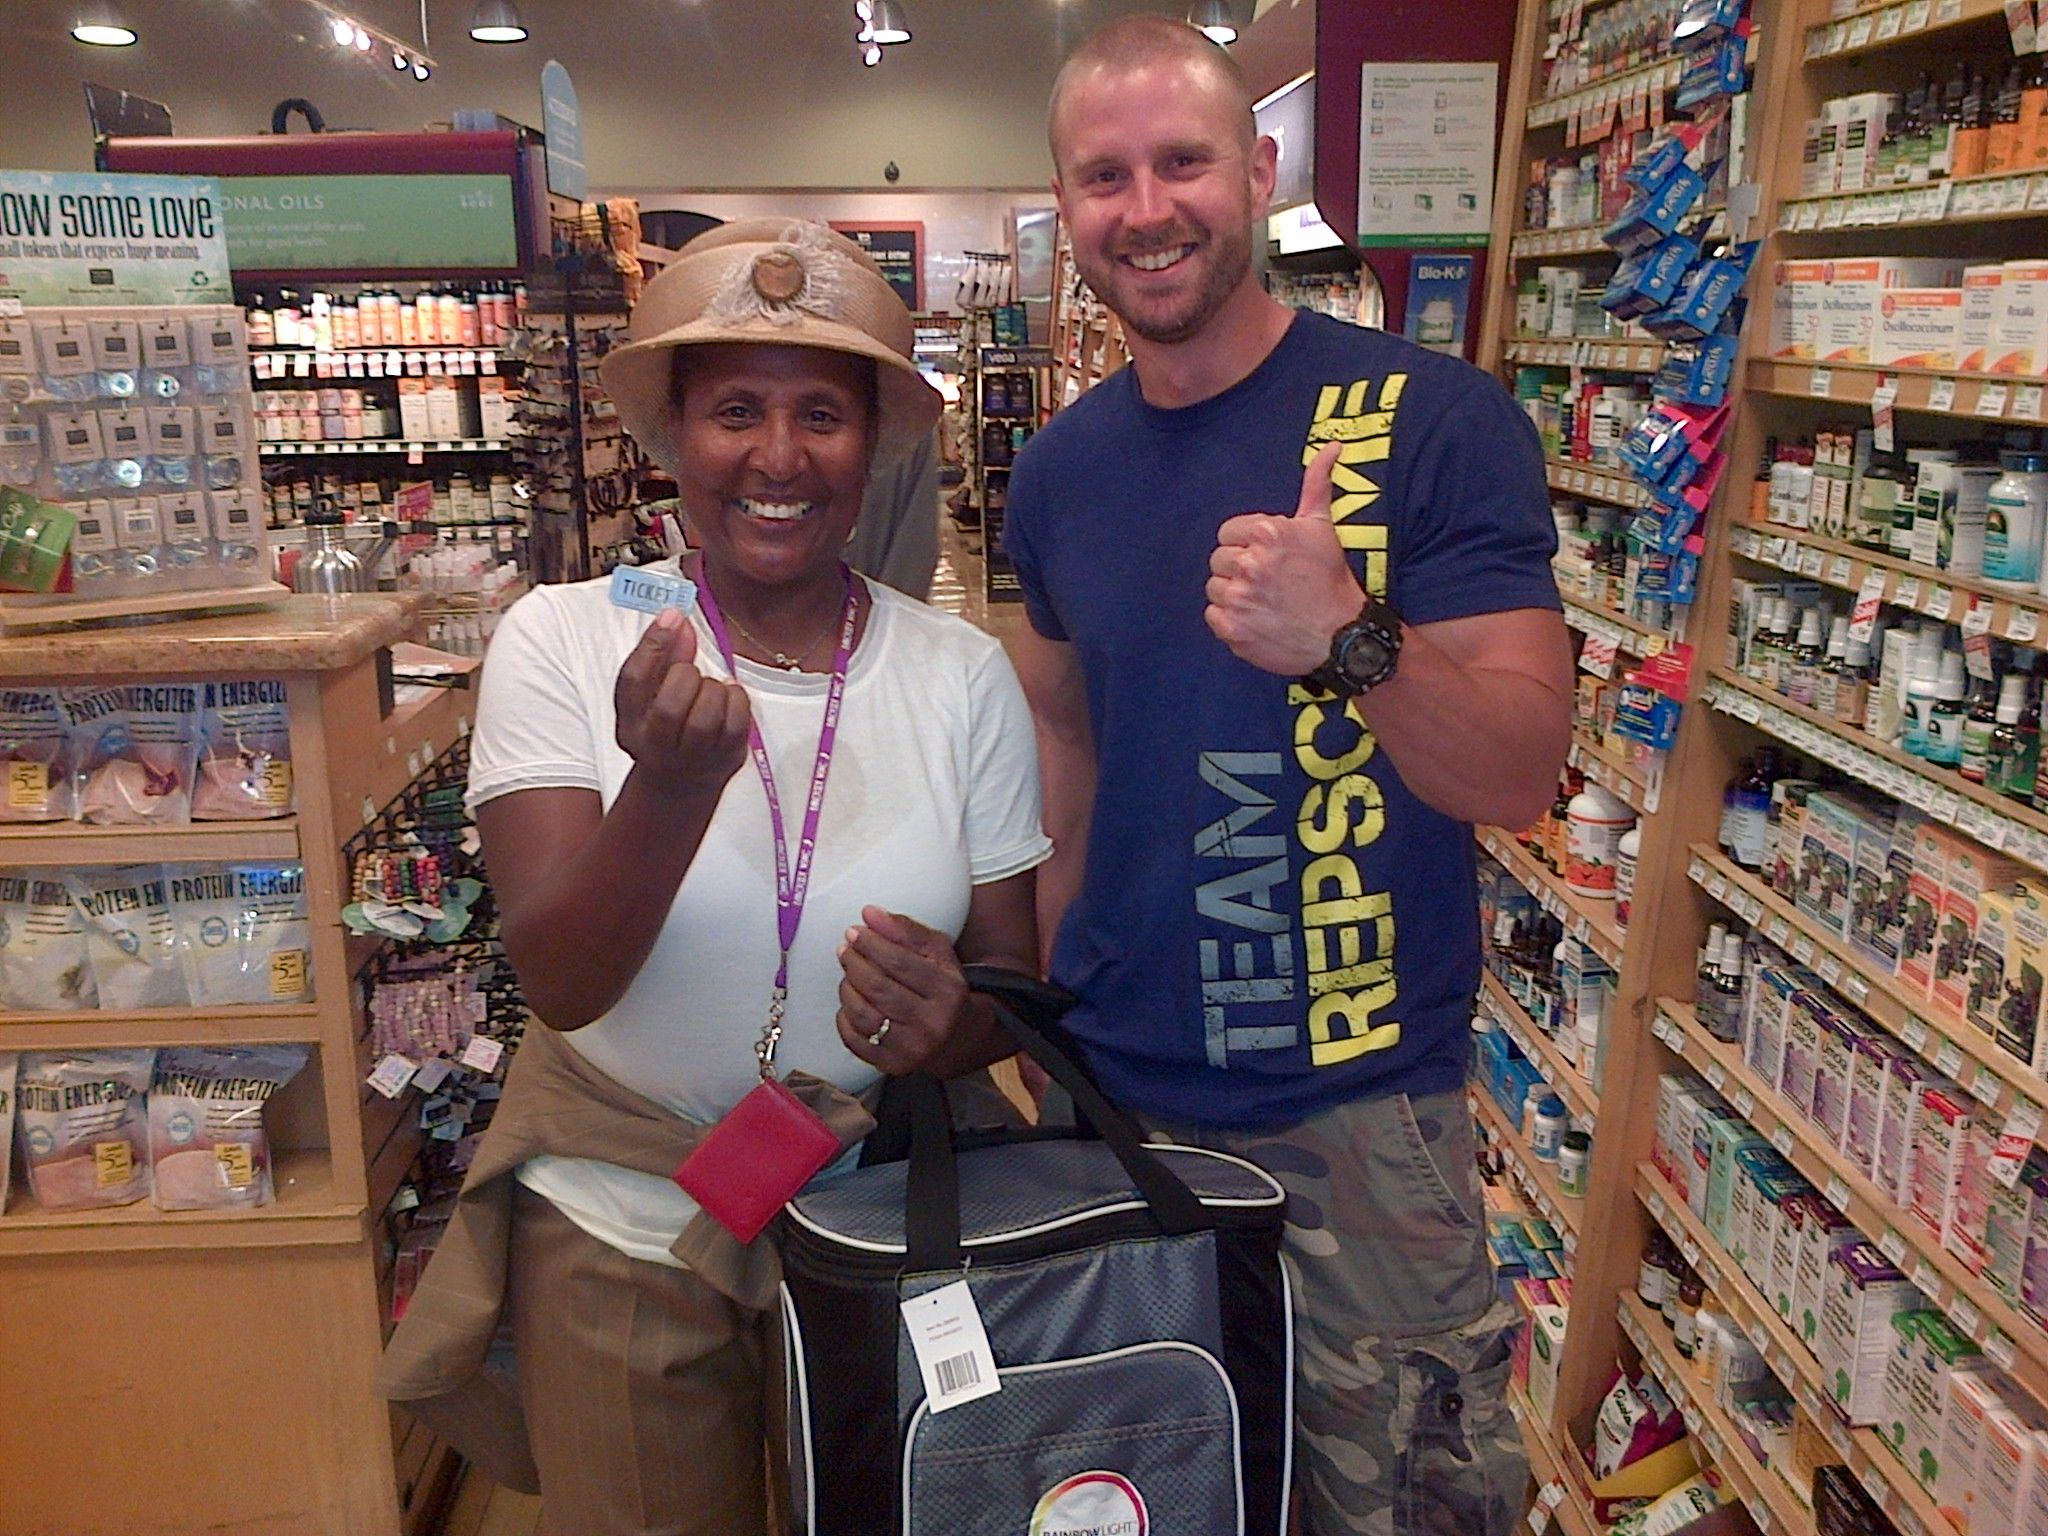 I just won a cooler full of goodies from whole foods in